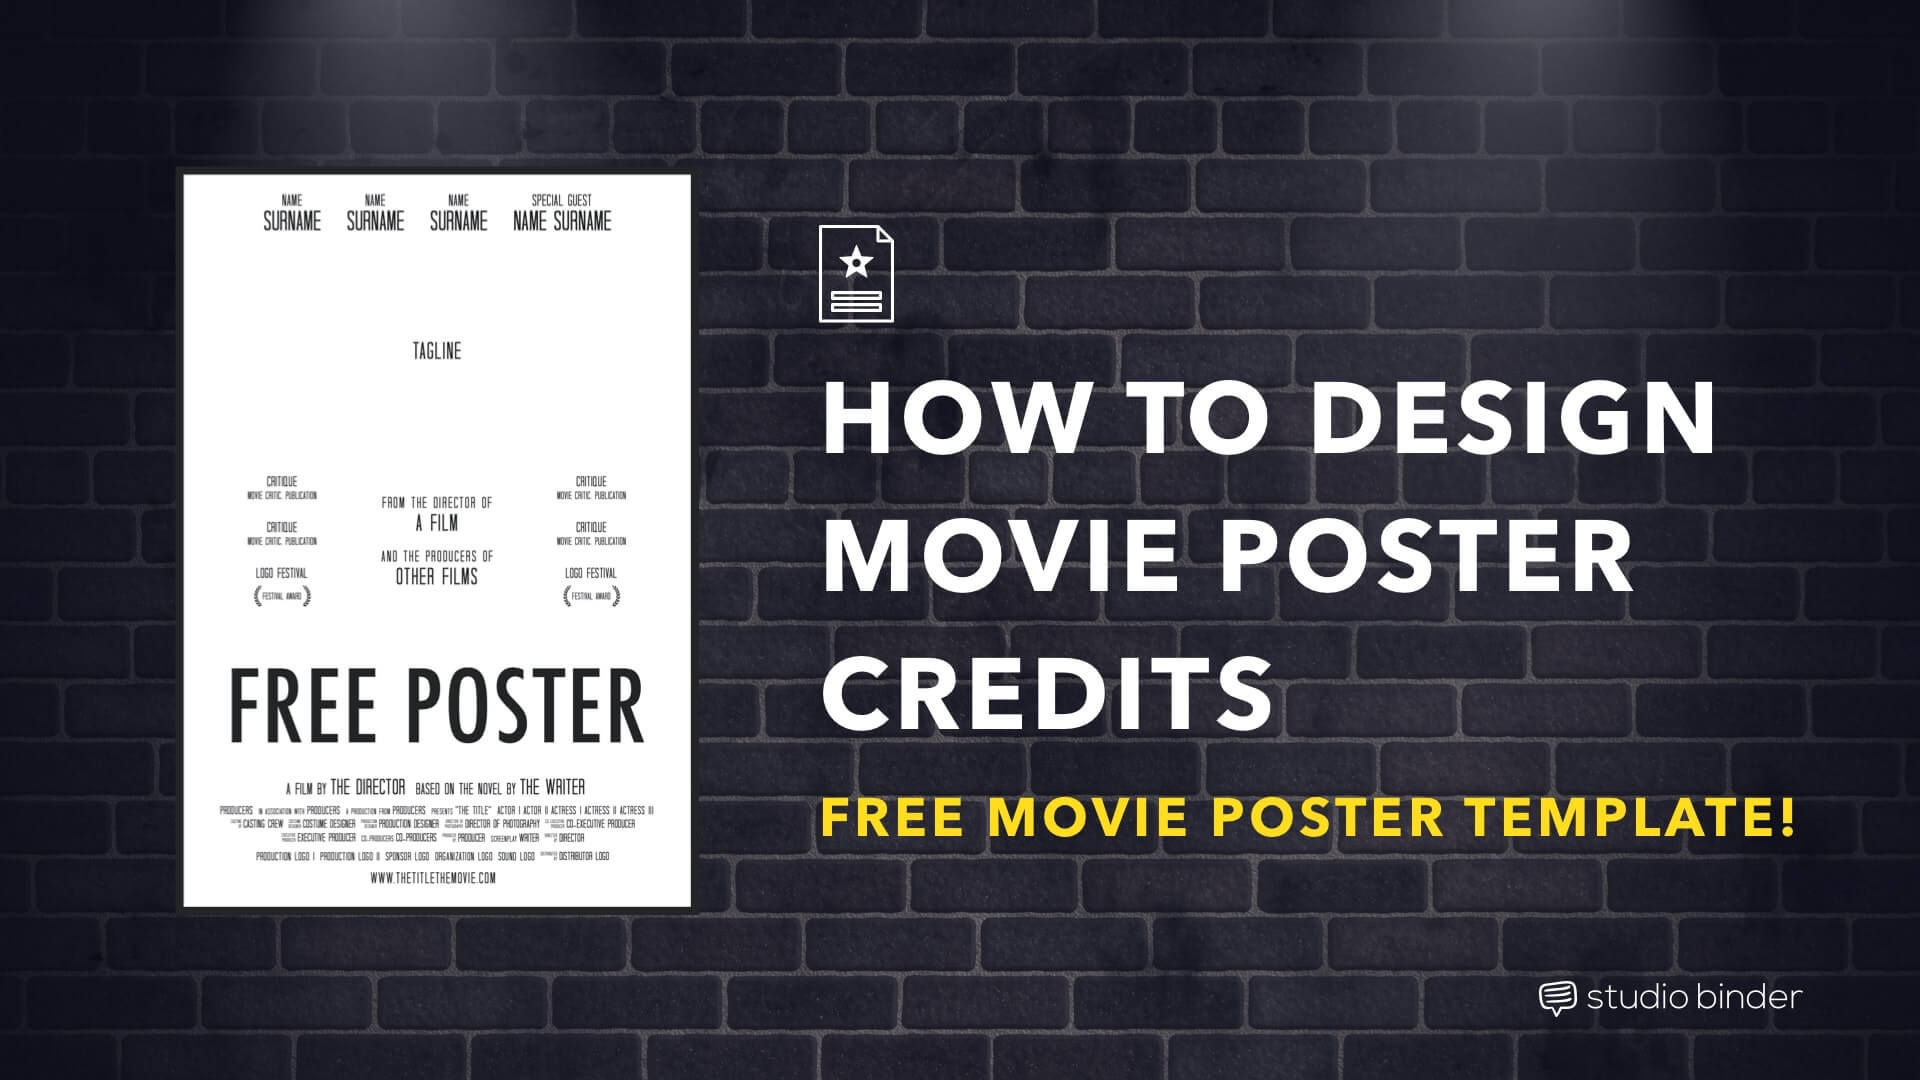 How to design a complete movie poster that meets all the usual billing block requirements. Includes FREE movie poster credits template.